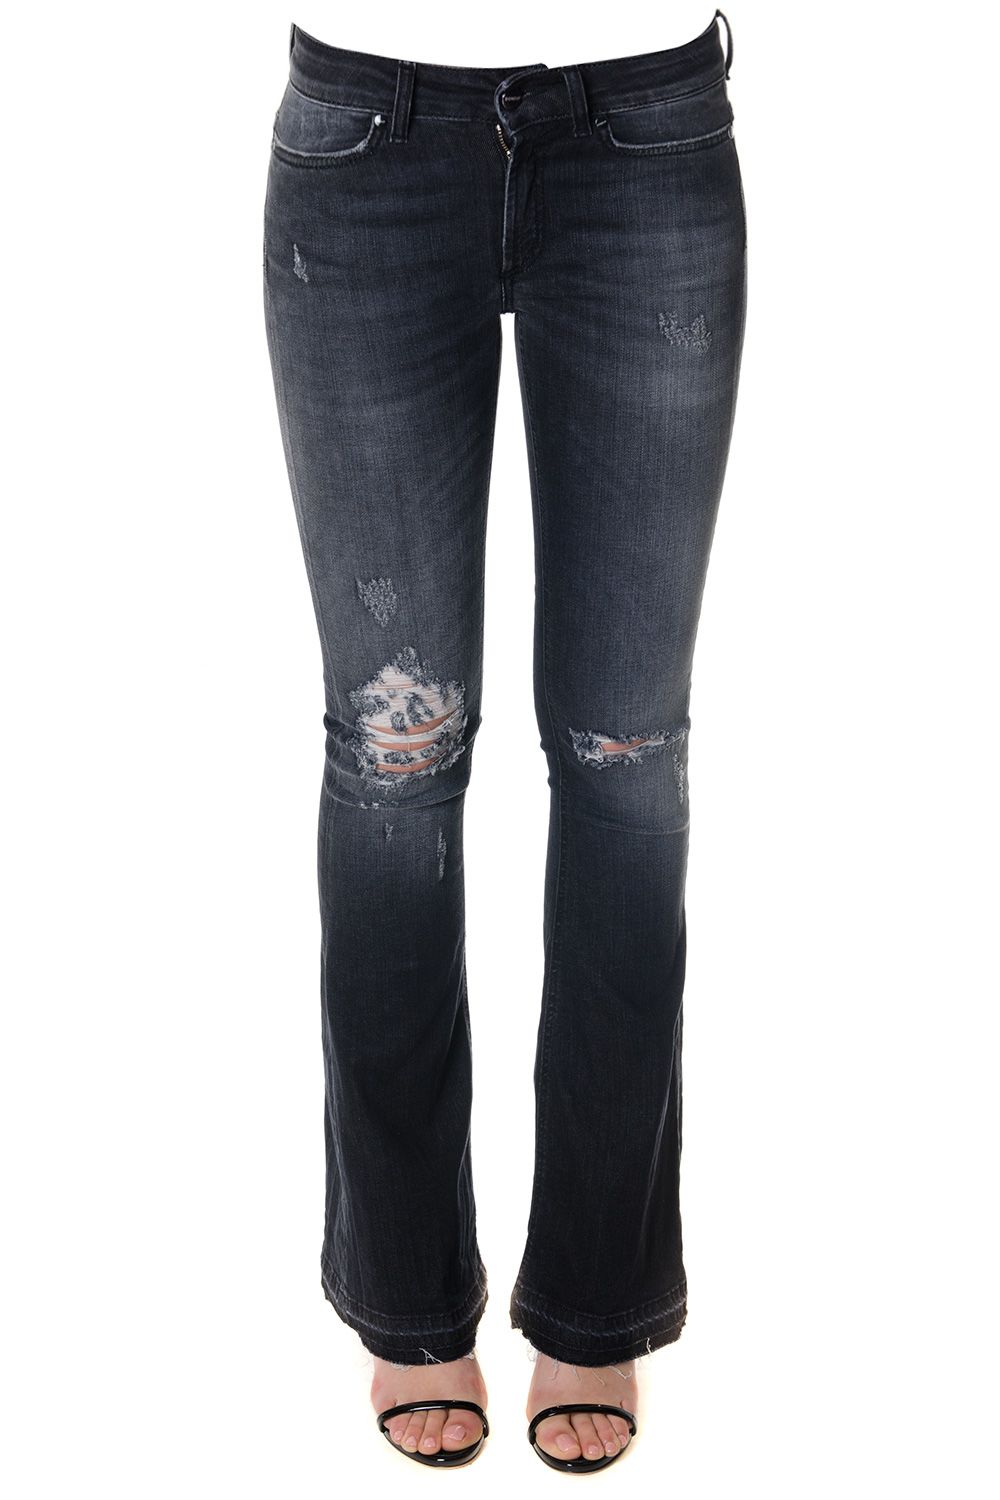 Dondup Black Flared Teared Jeans